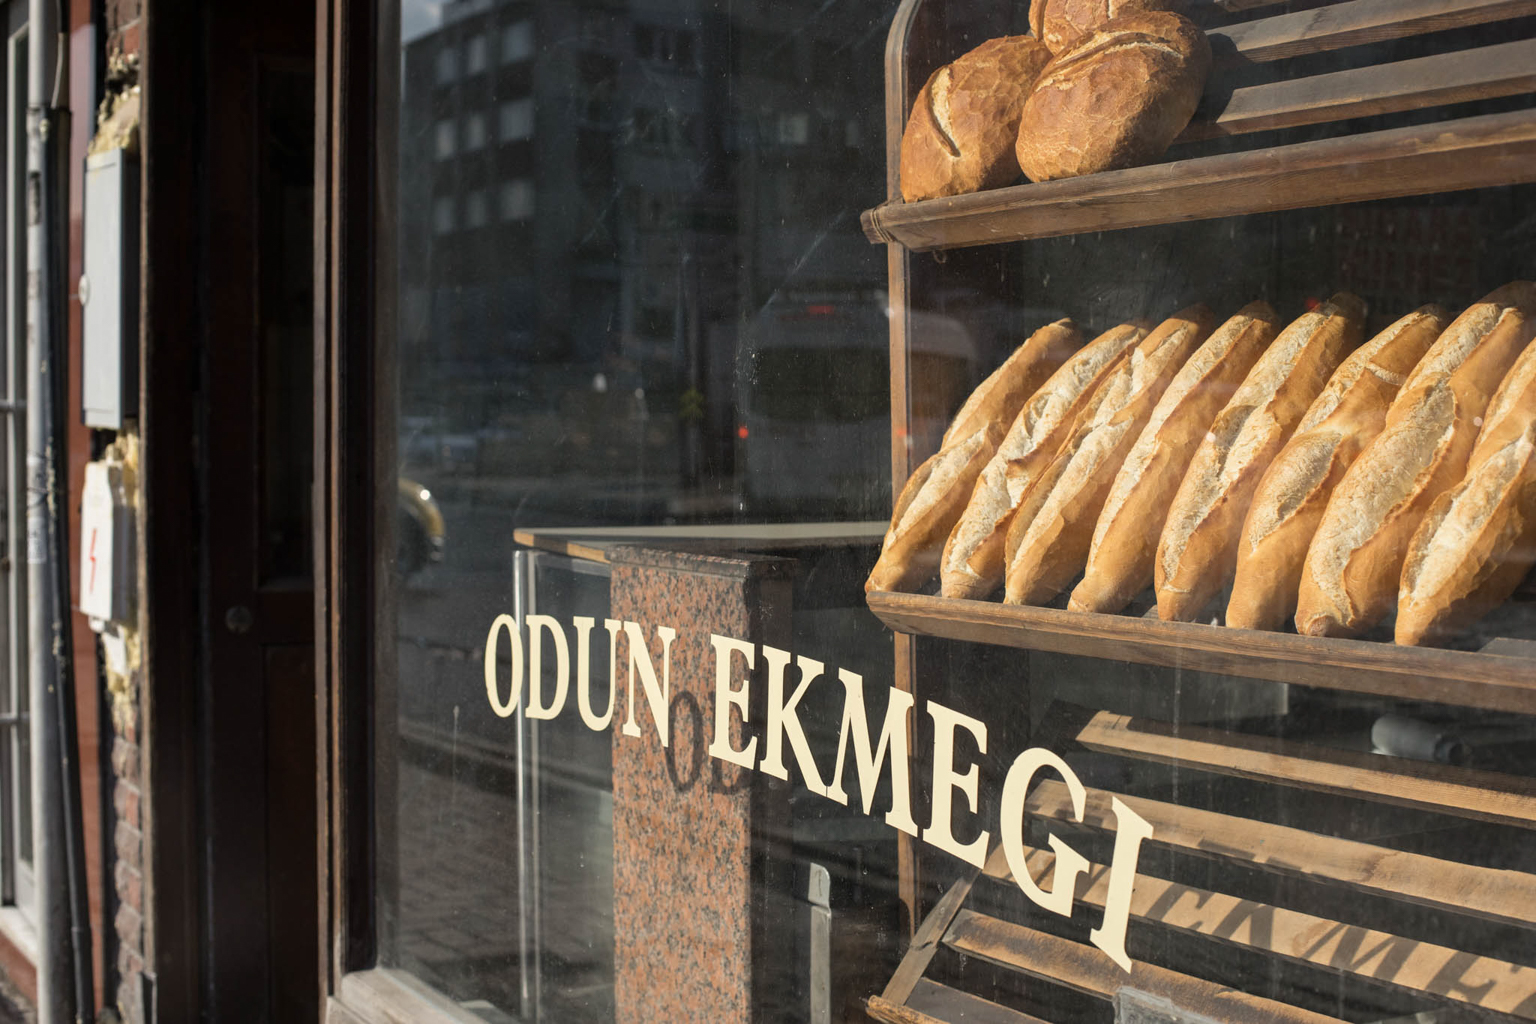 Whether it be lunch, breakfast, or dinner, ekemek (bread) is an important part of every Turkish meal.